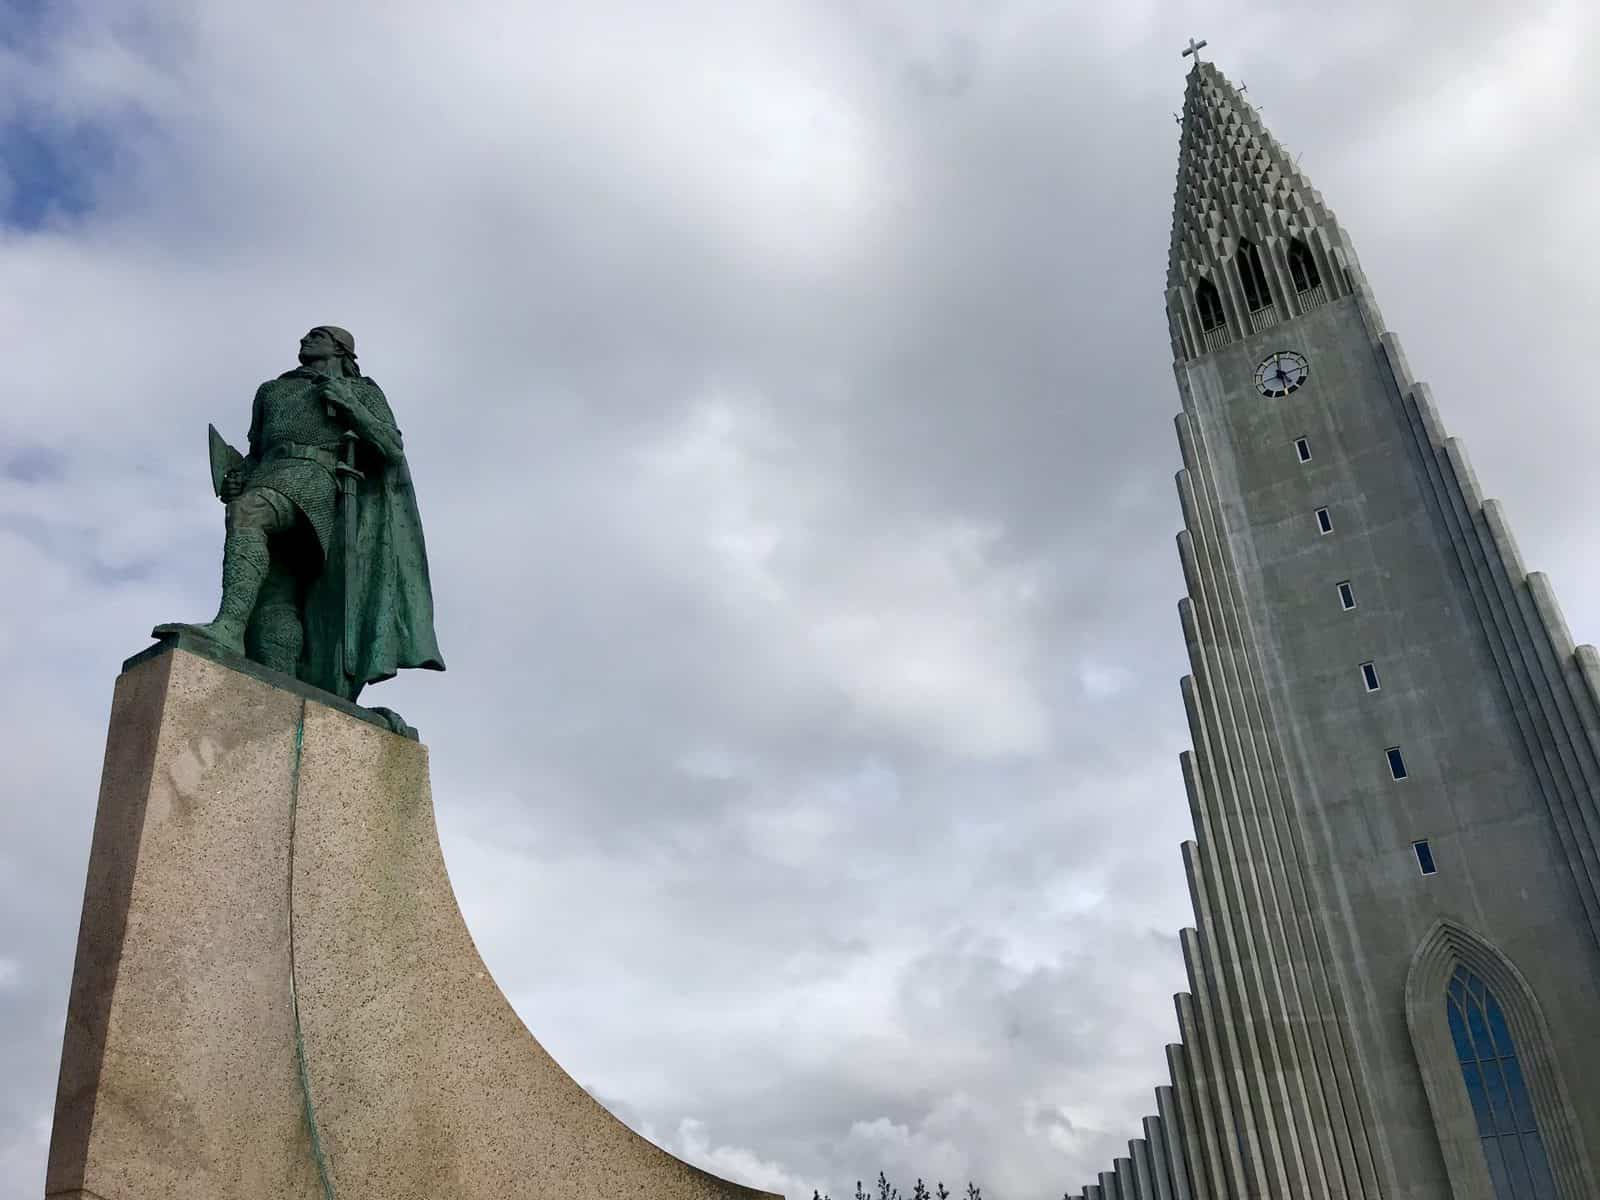 What to do in Iceland in summer - a day in Reykjavik is a must - Iceland itinerary ideas